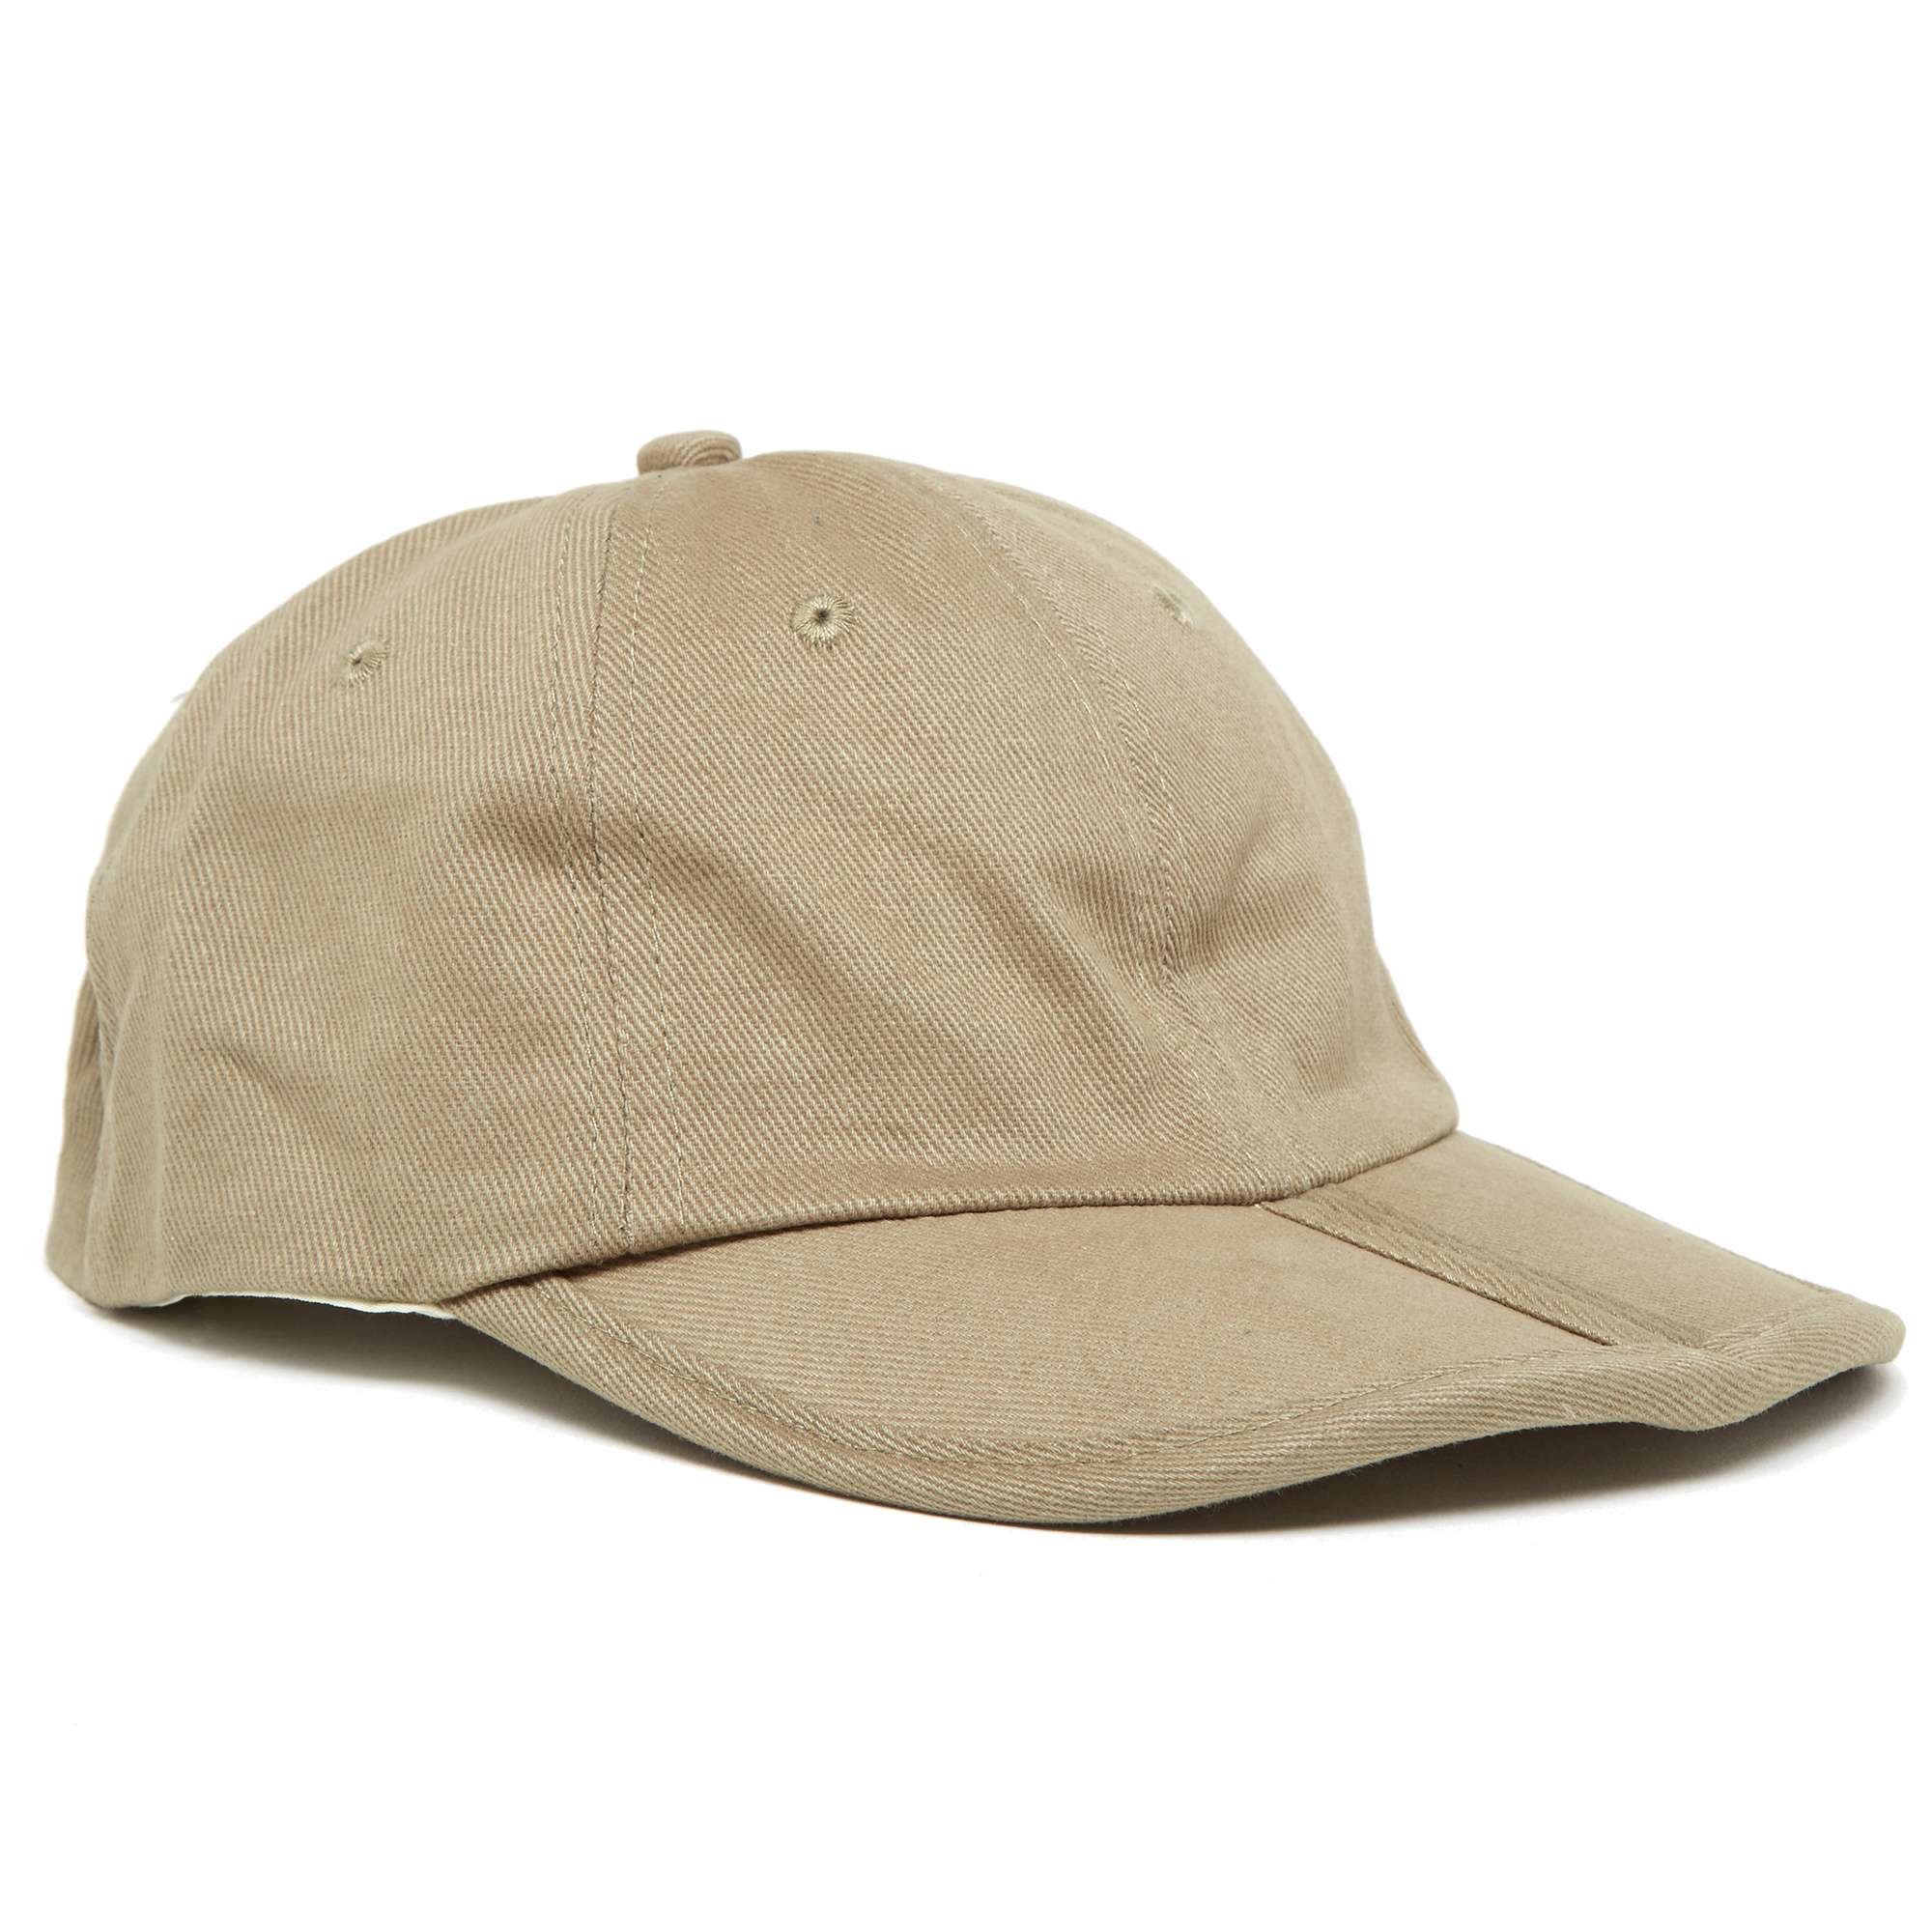 PETER STORM Folding Visor Cap